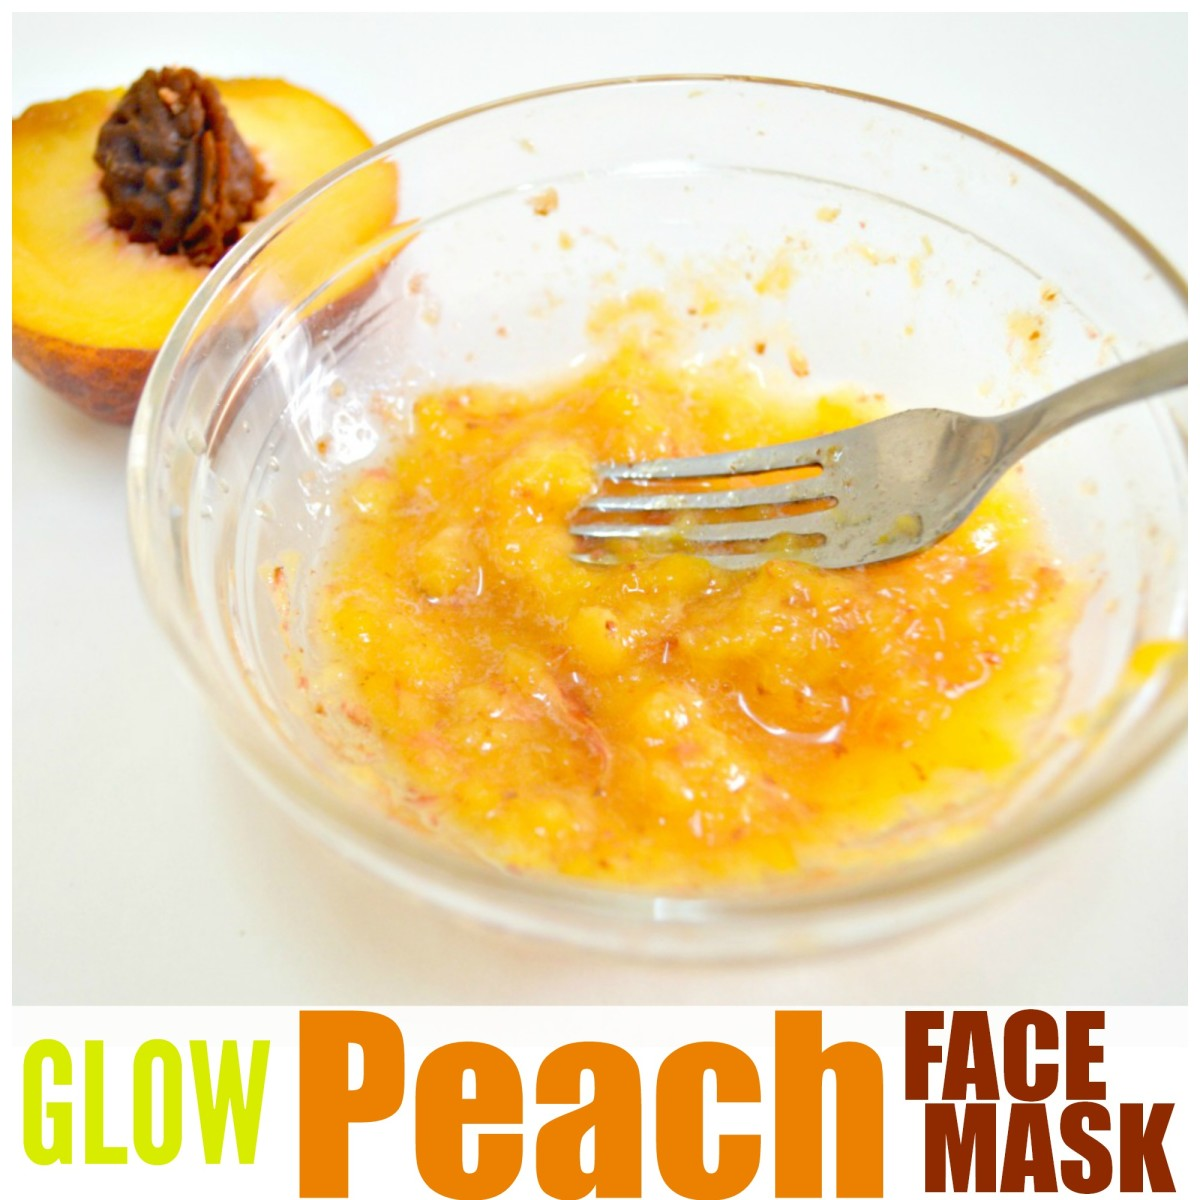 Glow Peach Face Mask for Bright Beautiful Skin